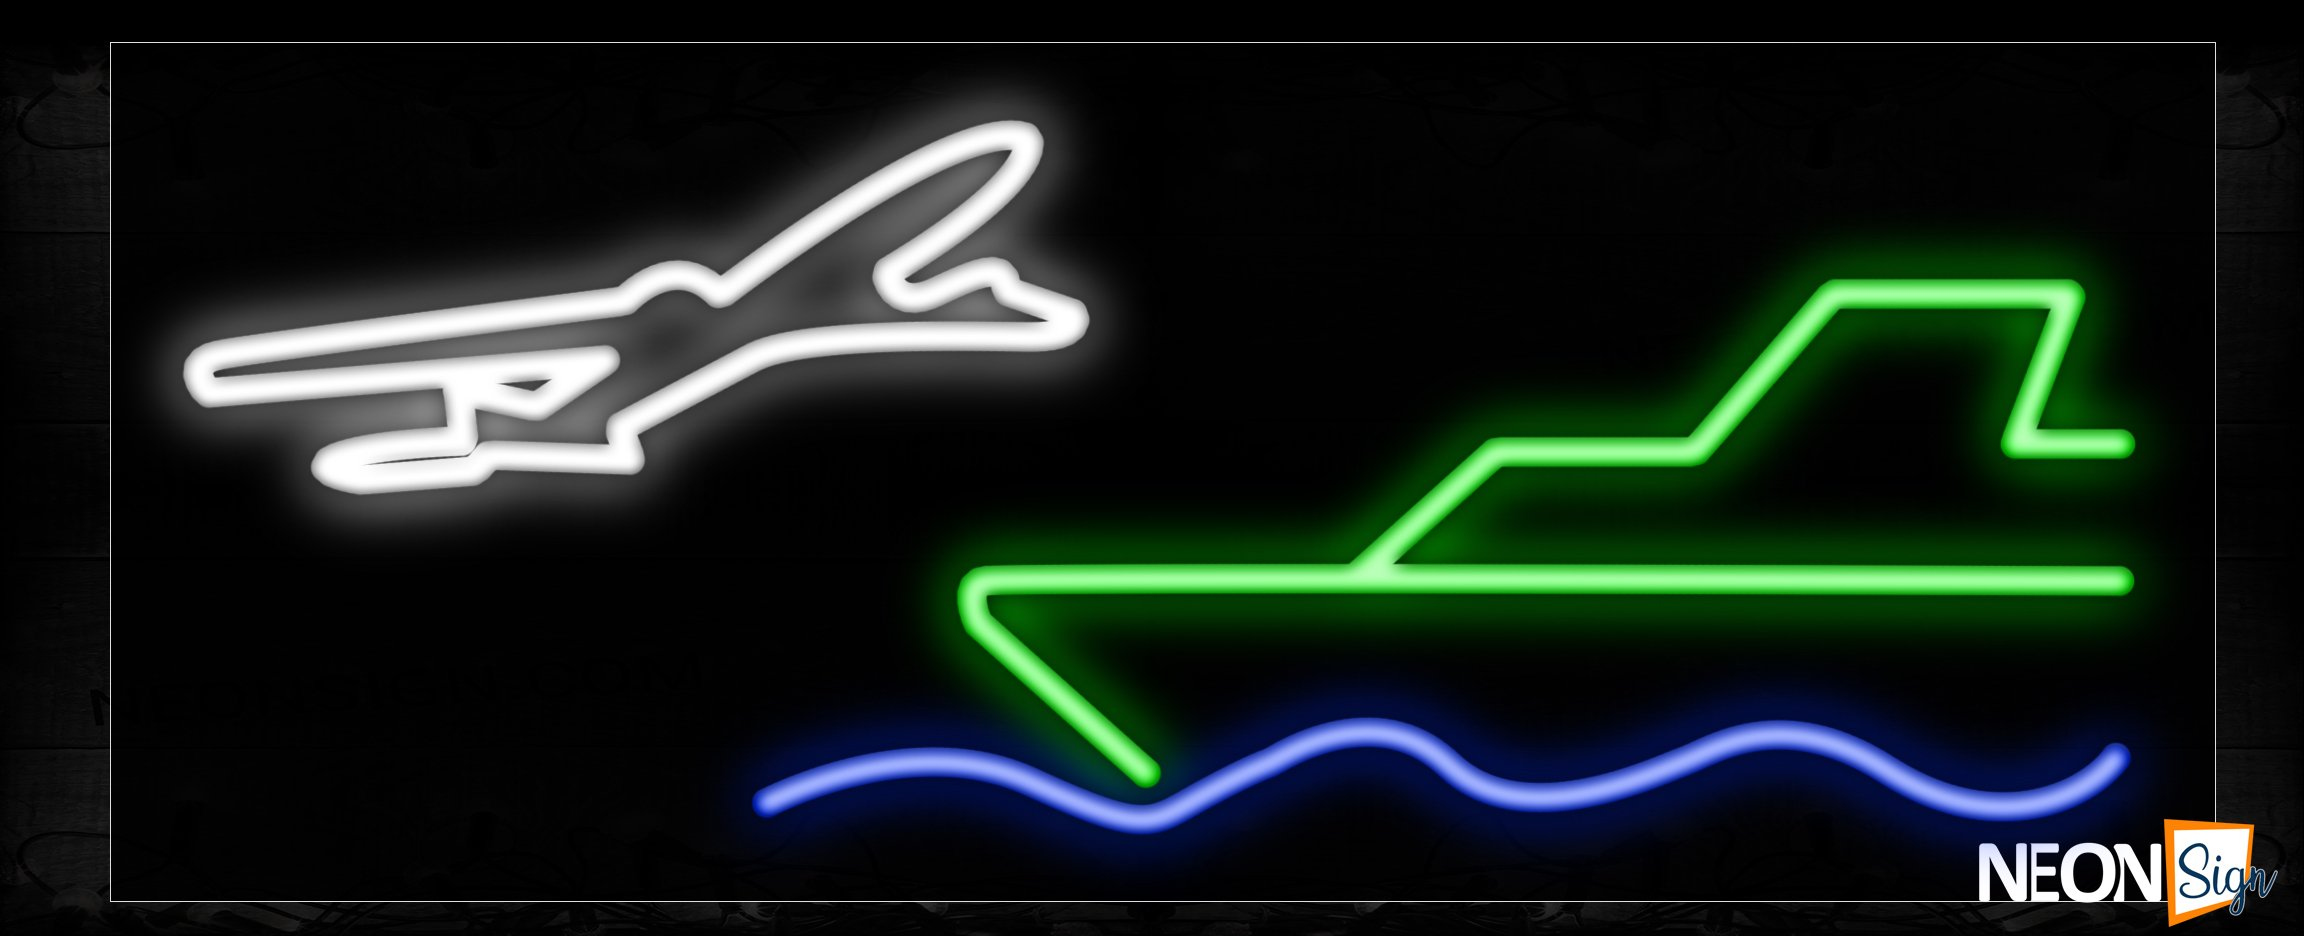 Image of 10148 Airplane and ship logo Neon Sign_13x32 Black Backing